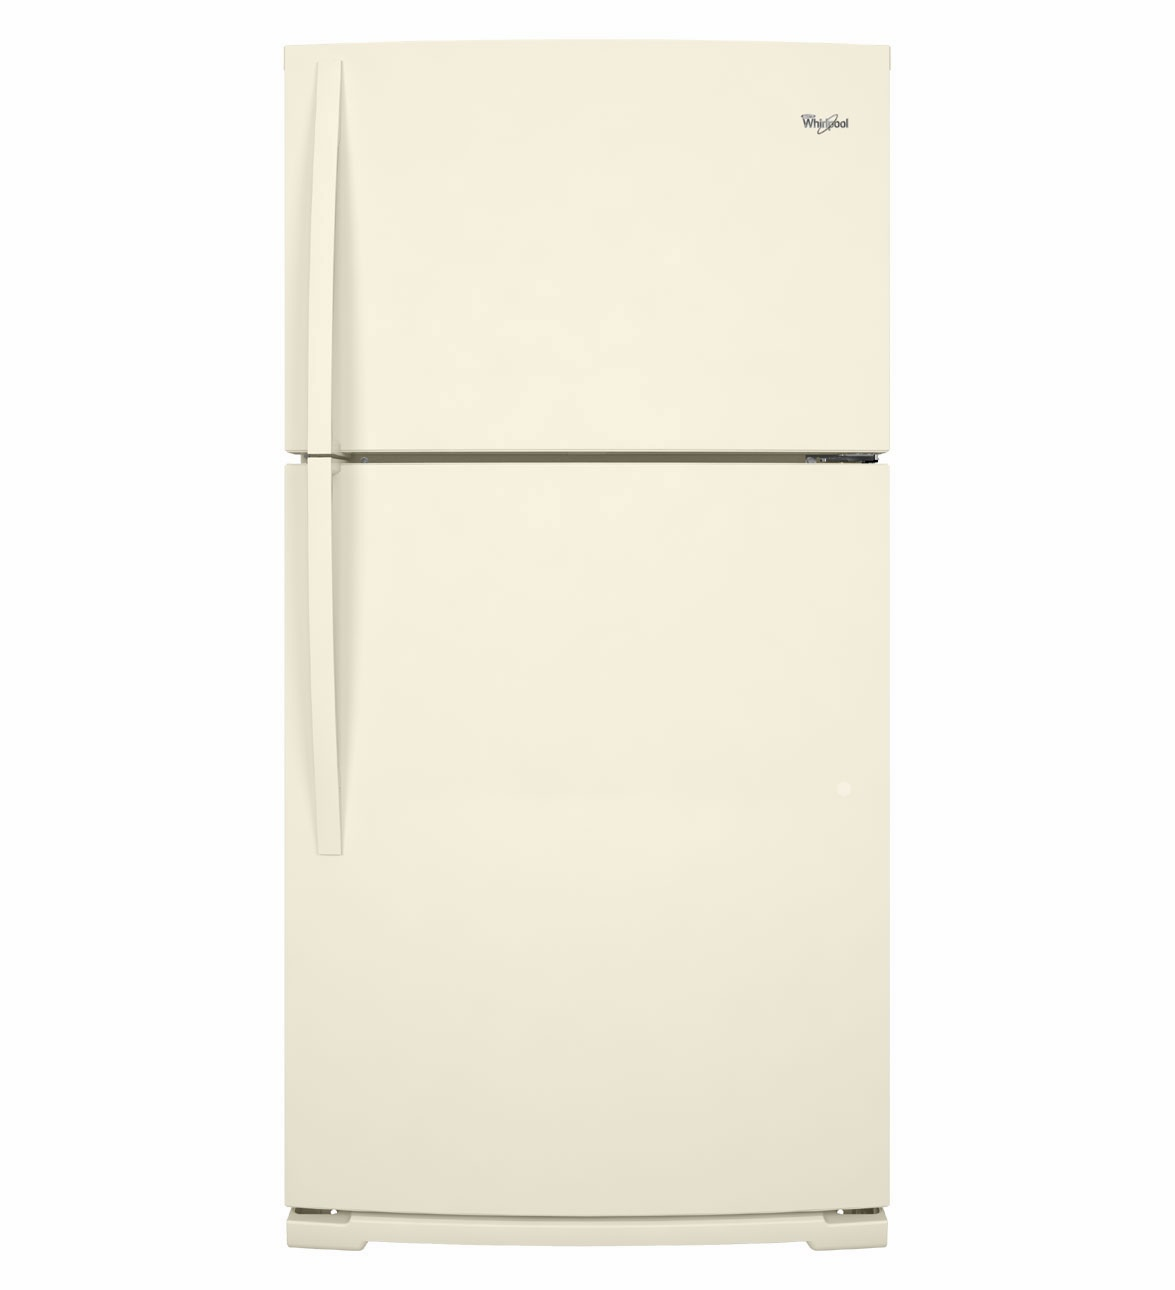 Bottom Freezer Refrigerators January 2016 Amana Agr5844vdw Wiring Diagram Pictures Of Whirlpool Refrigerator Bisque